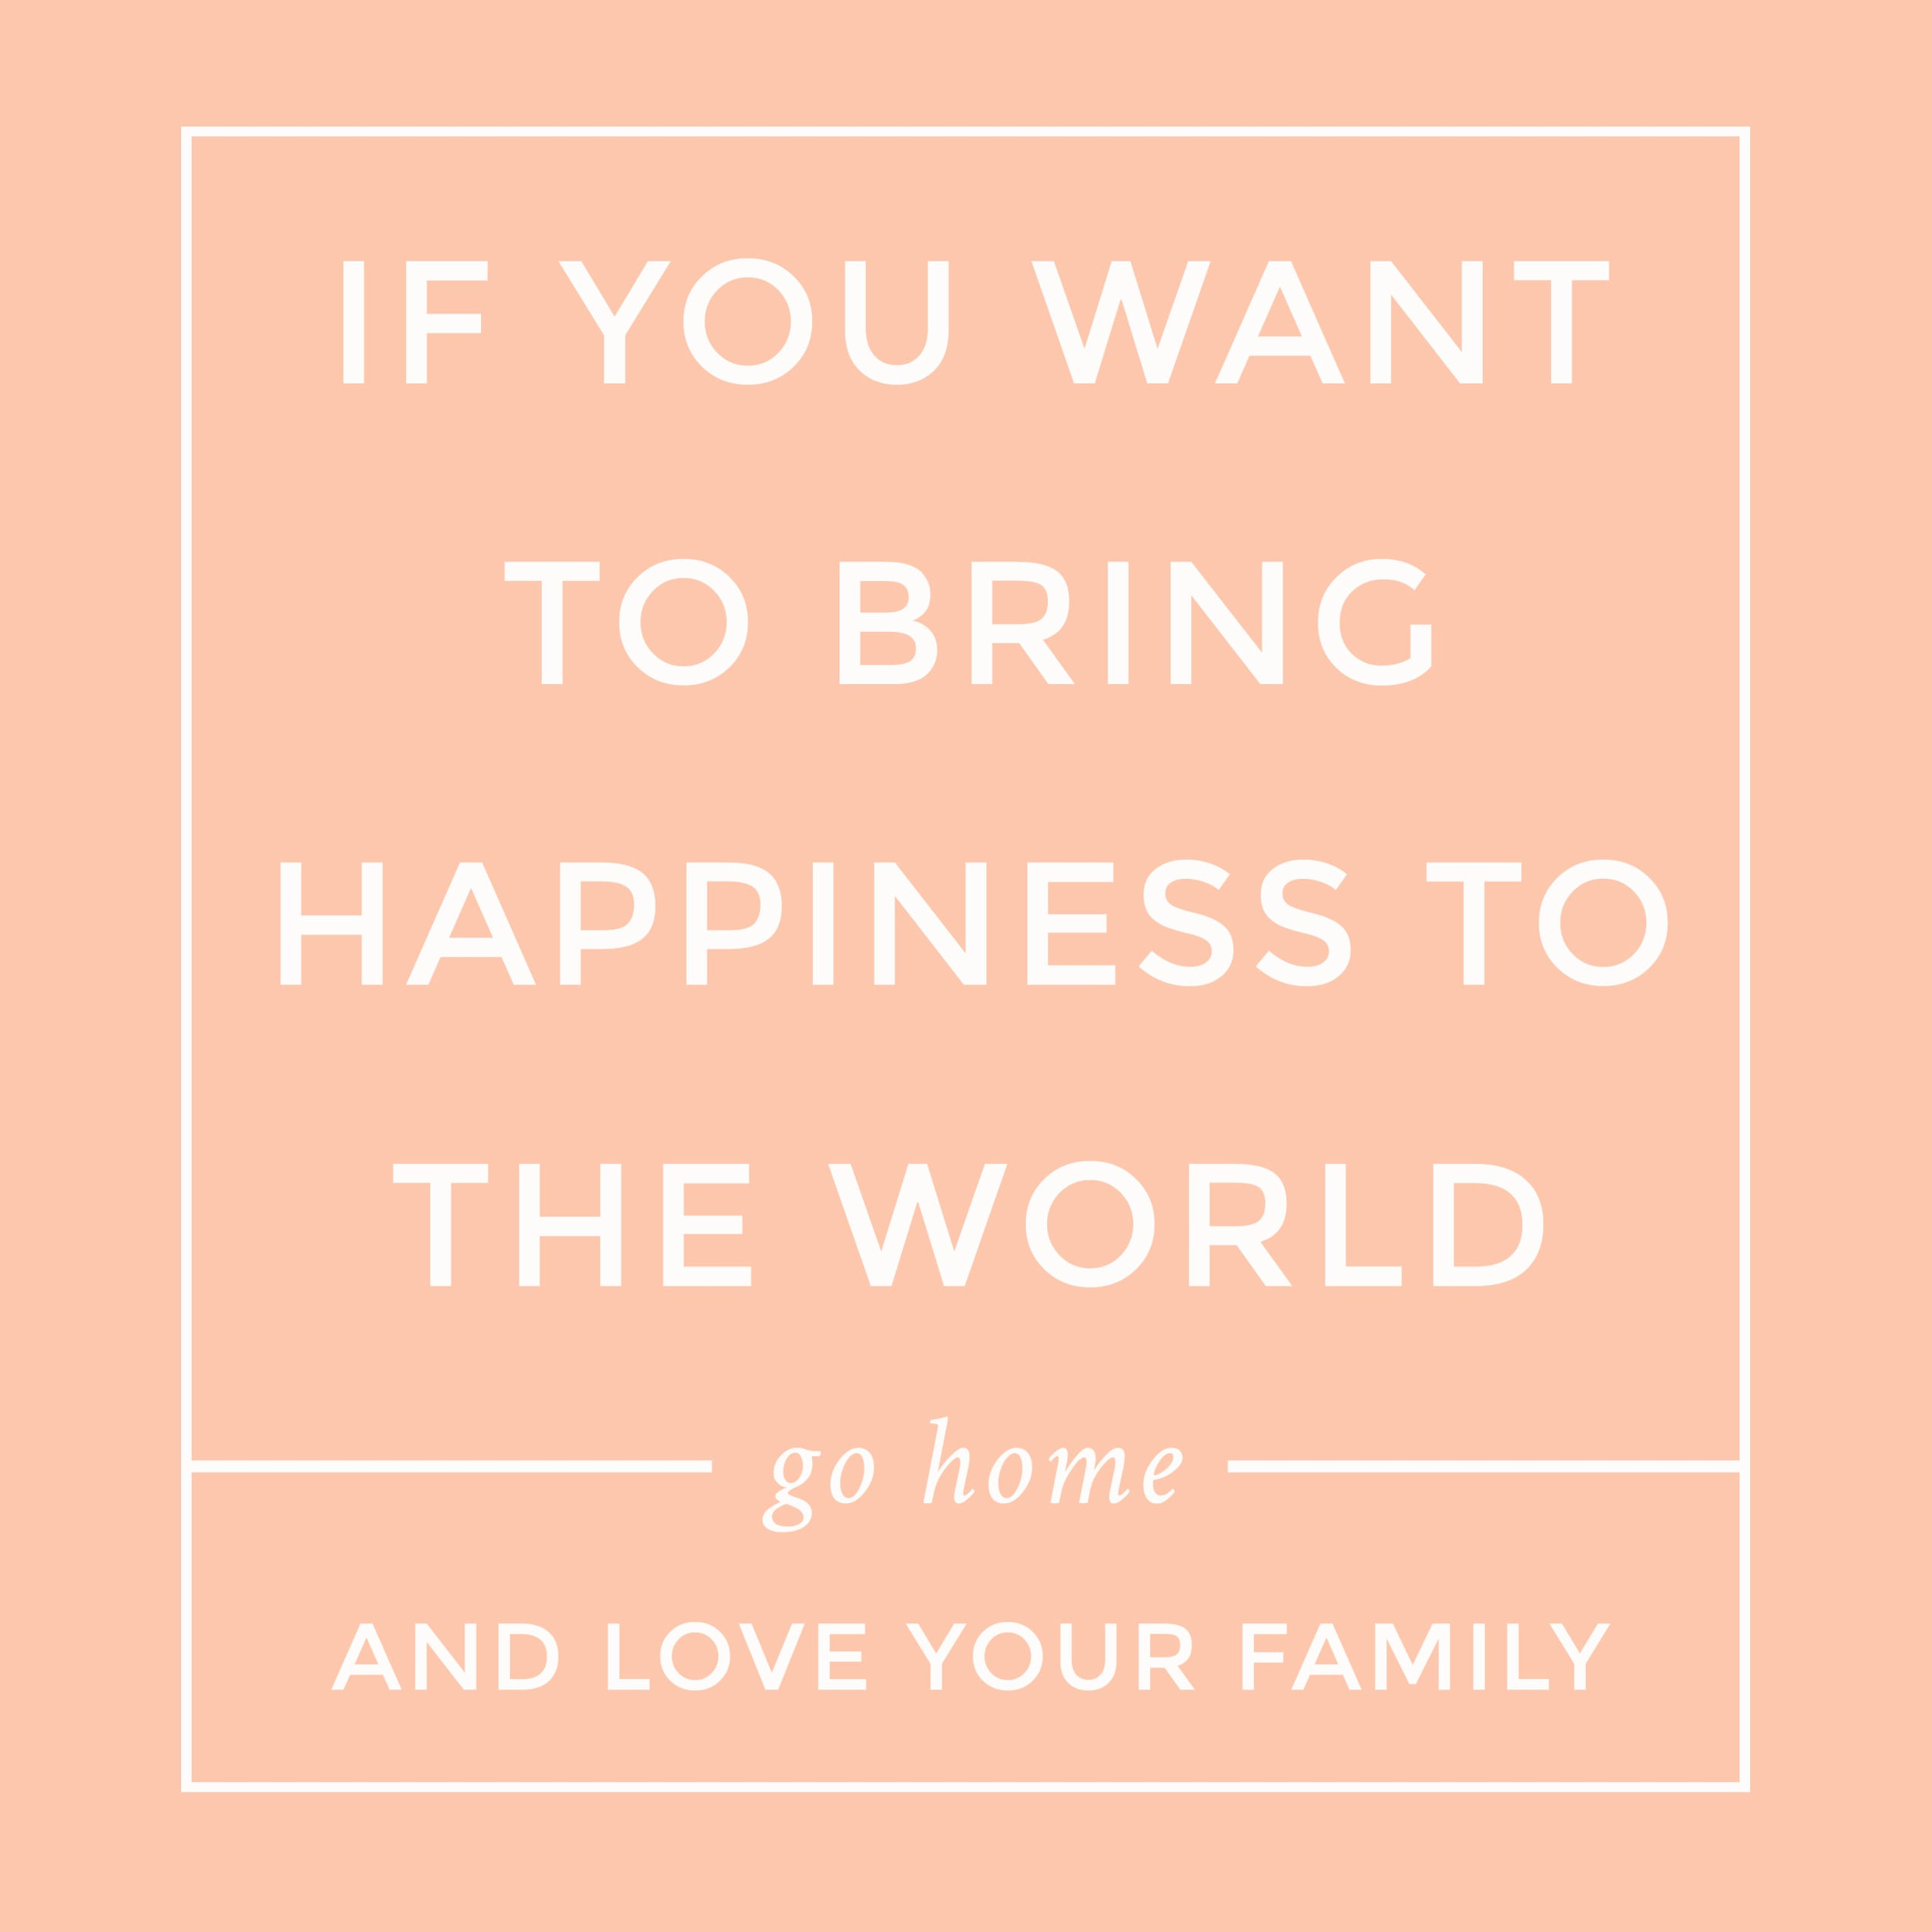 Go Home and Love Your Family - Mother Teresa